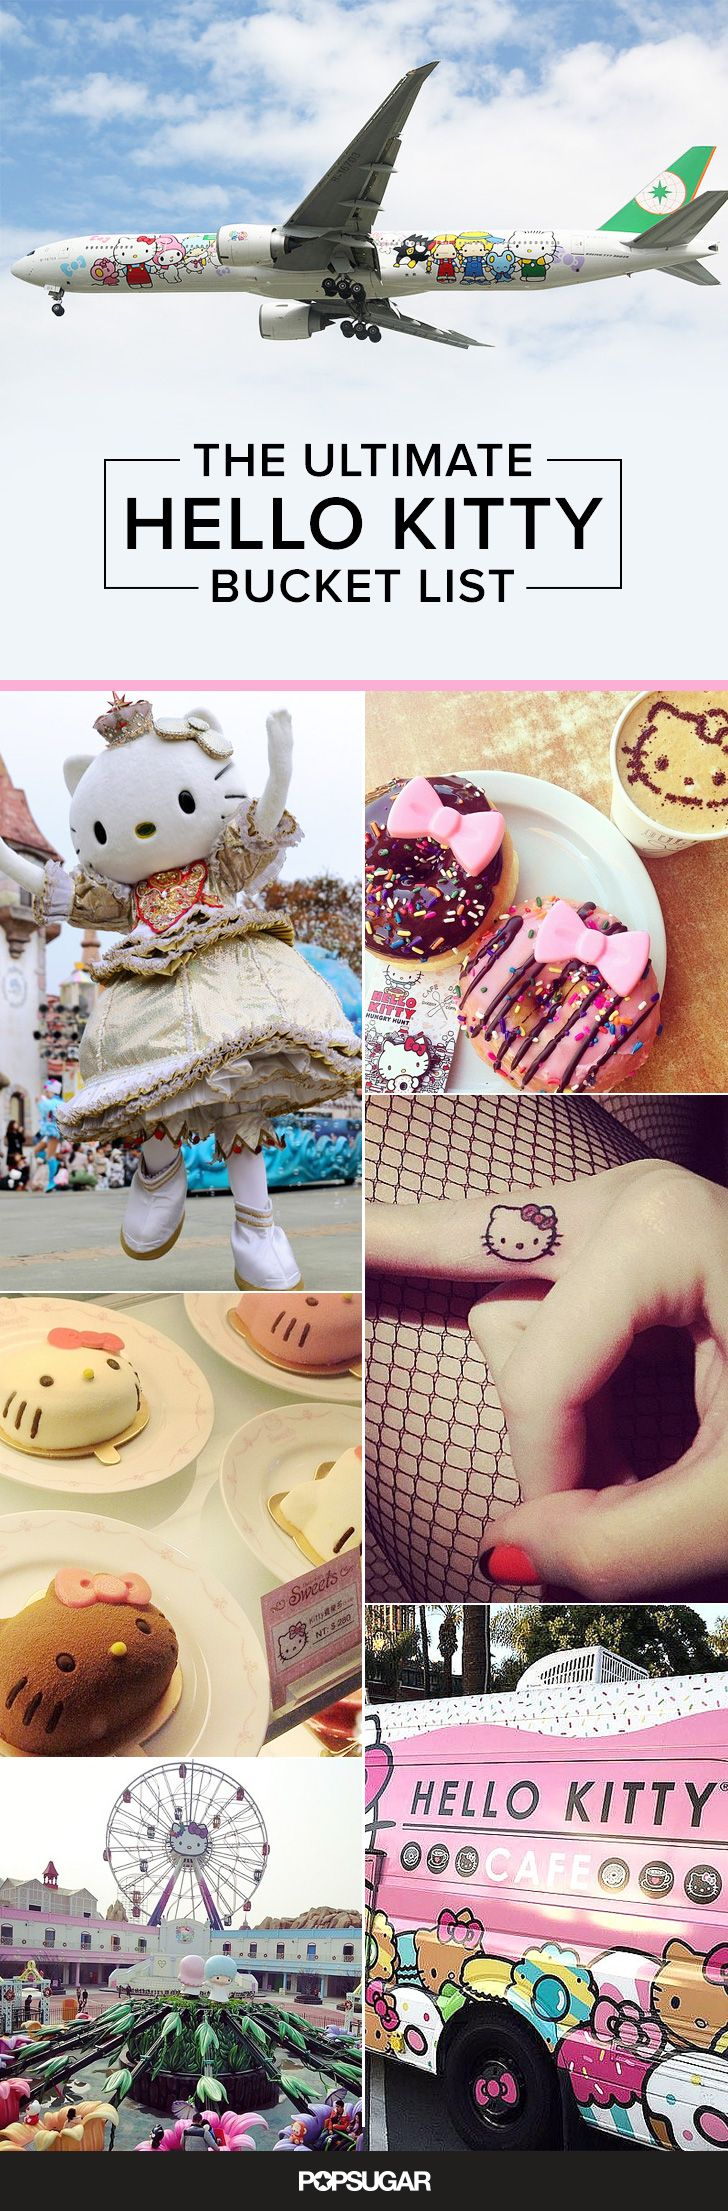 You're not a real Hello Kitty fan until you complete this bucket list. Great summer idea!